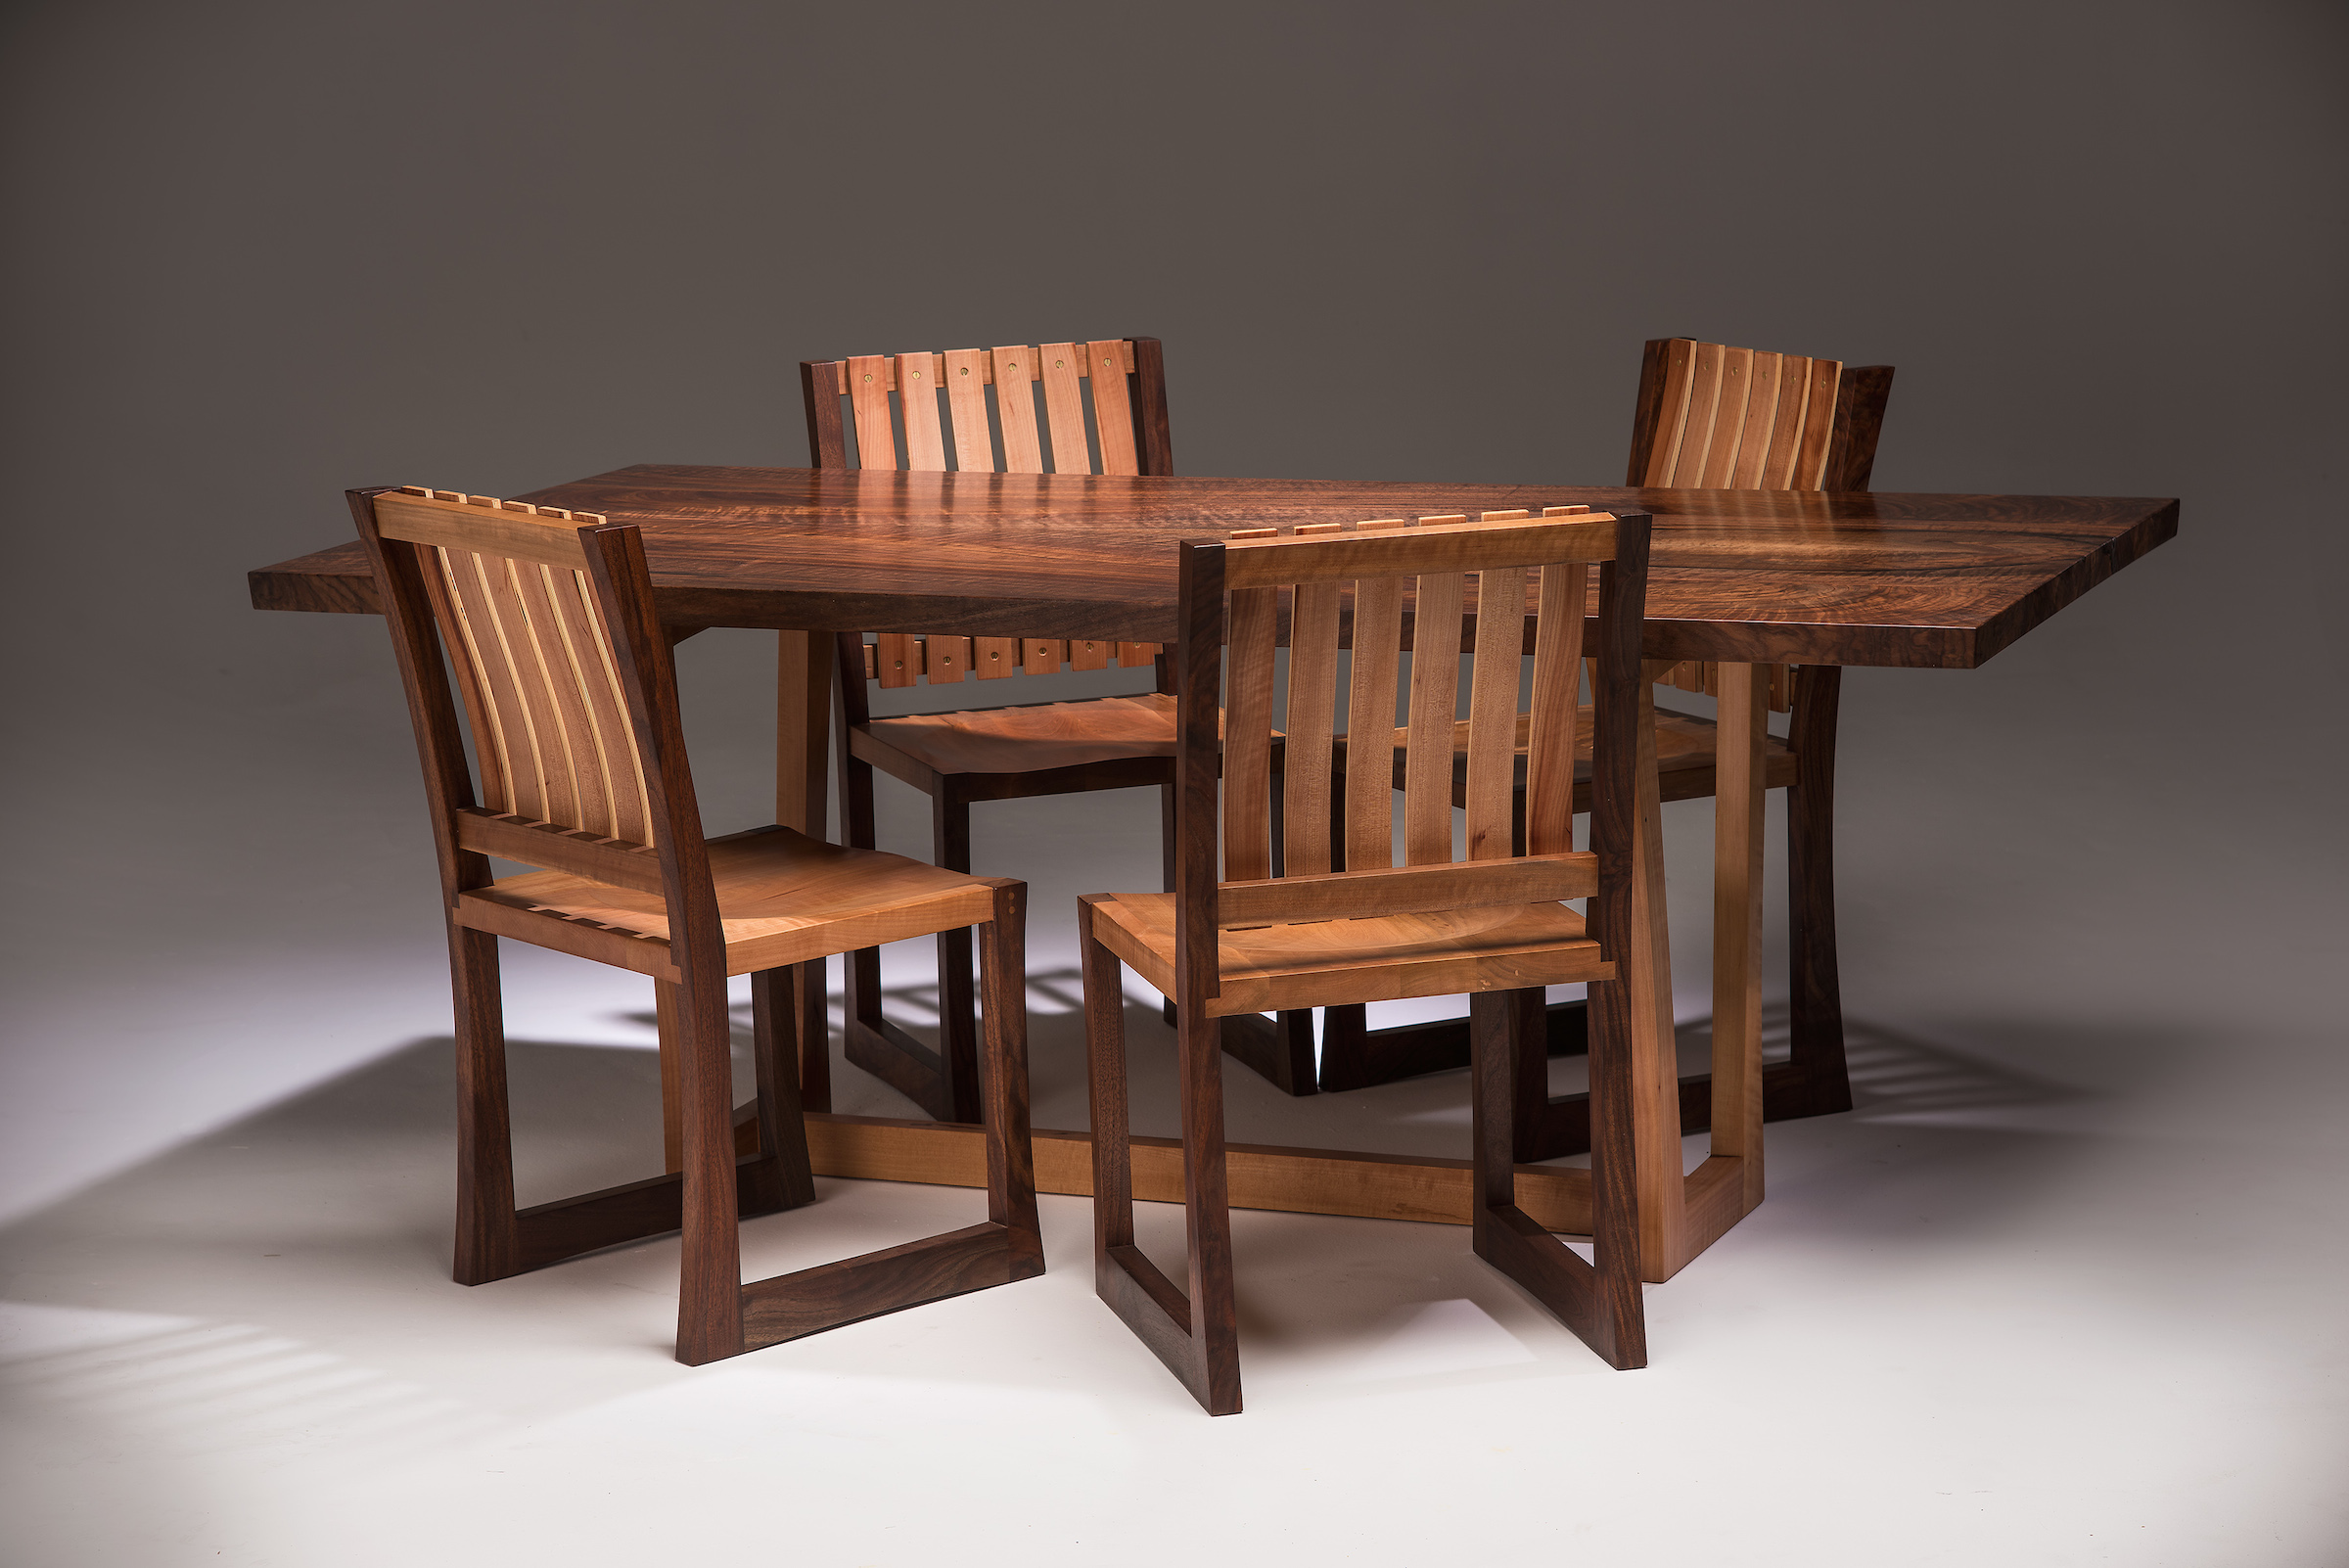 SideTableChairs